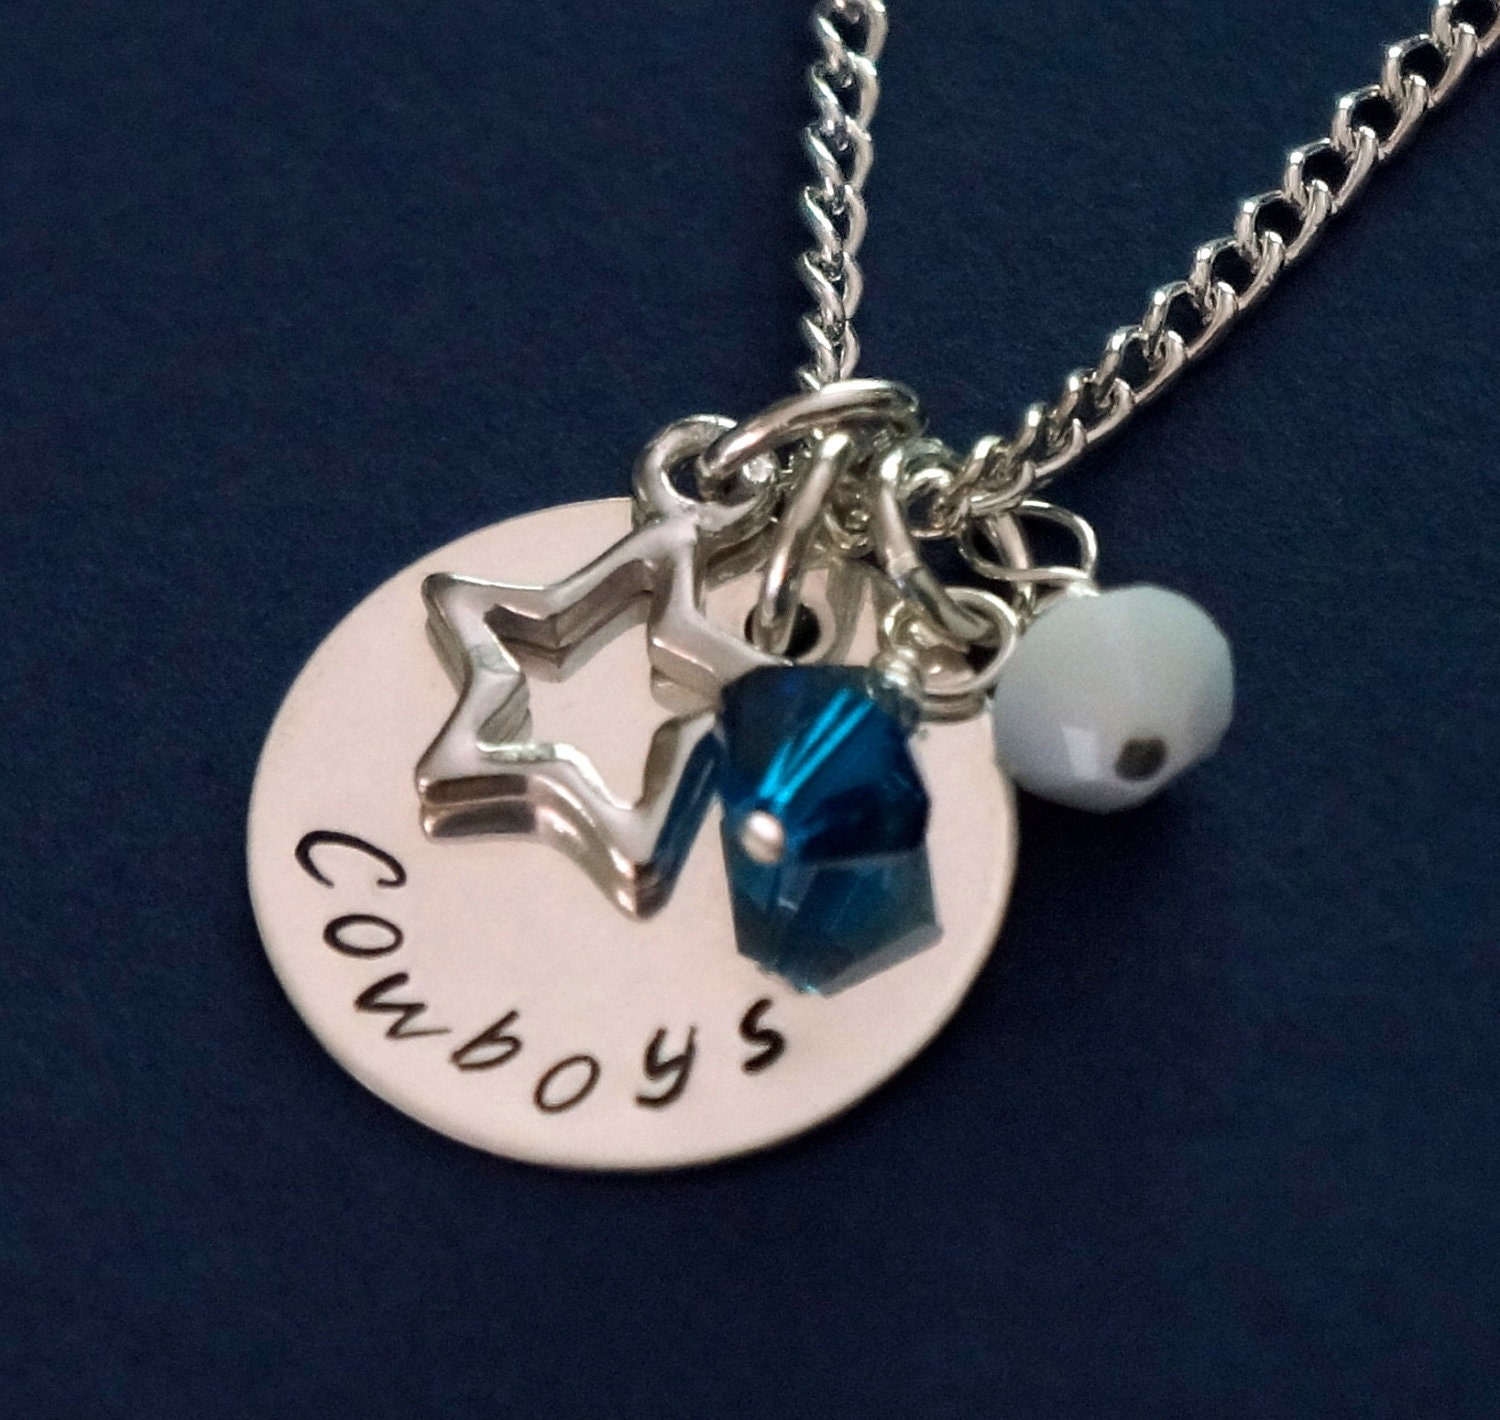 dallas cowboys jewelry hand stamped sterling silver charm. Black Bedroom Furniture Sets. Home Design Ideas